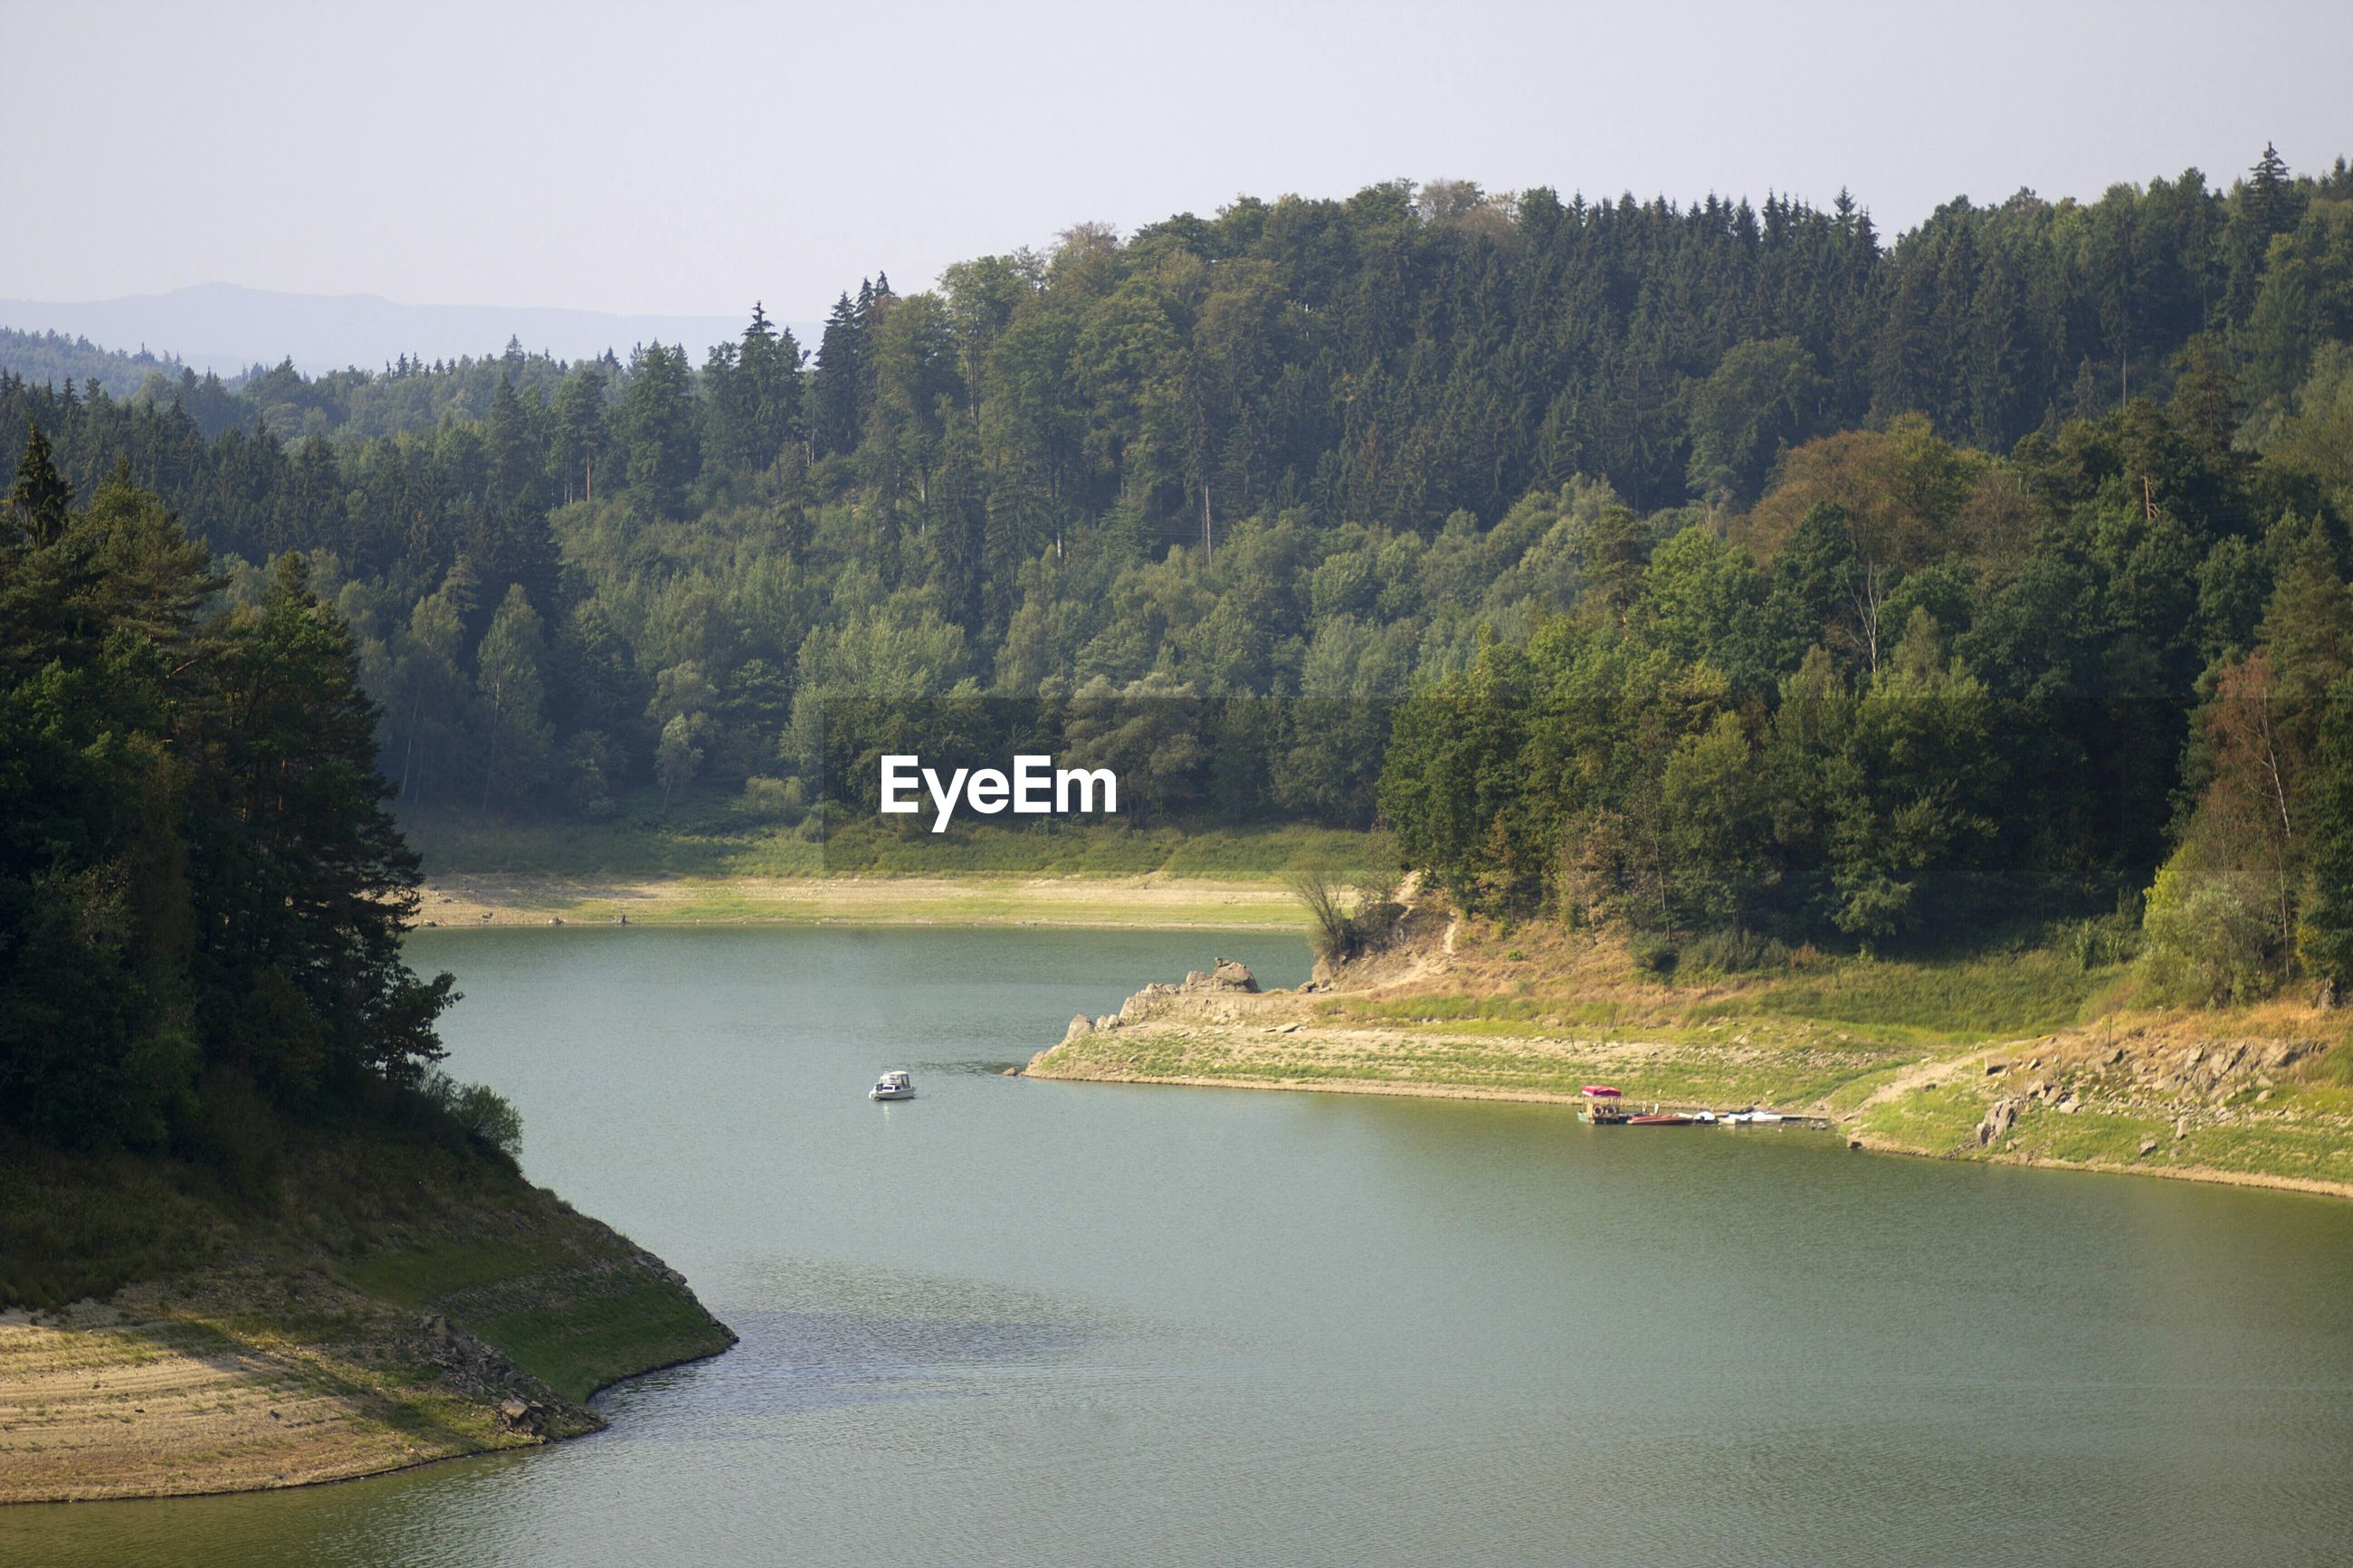 View of river surrounded by trees